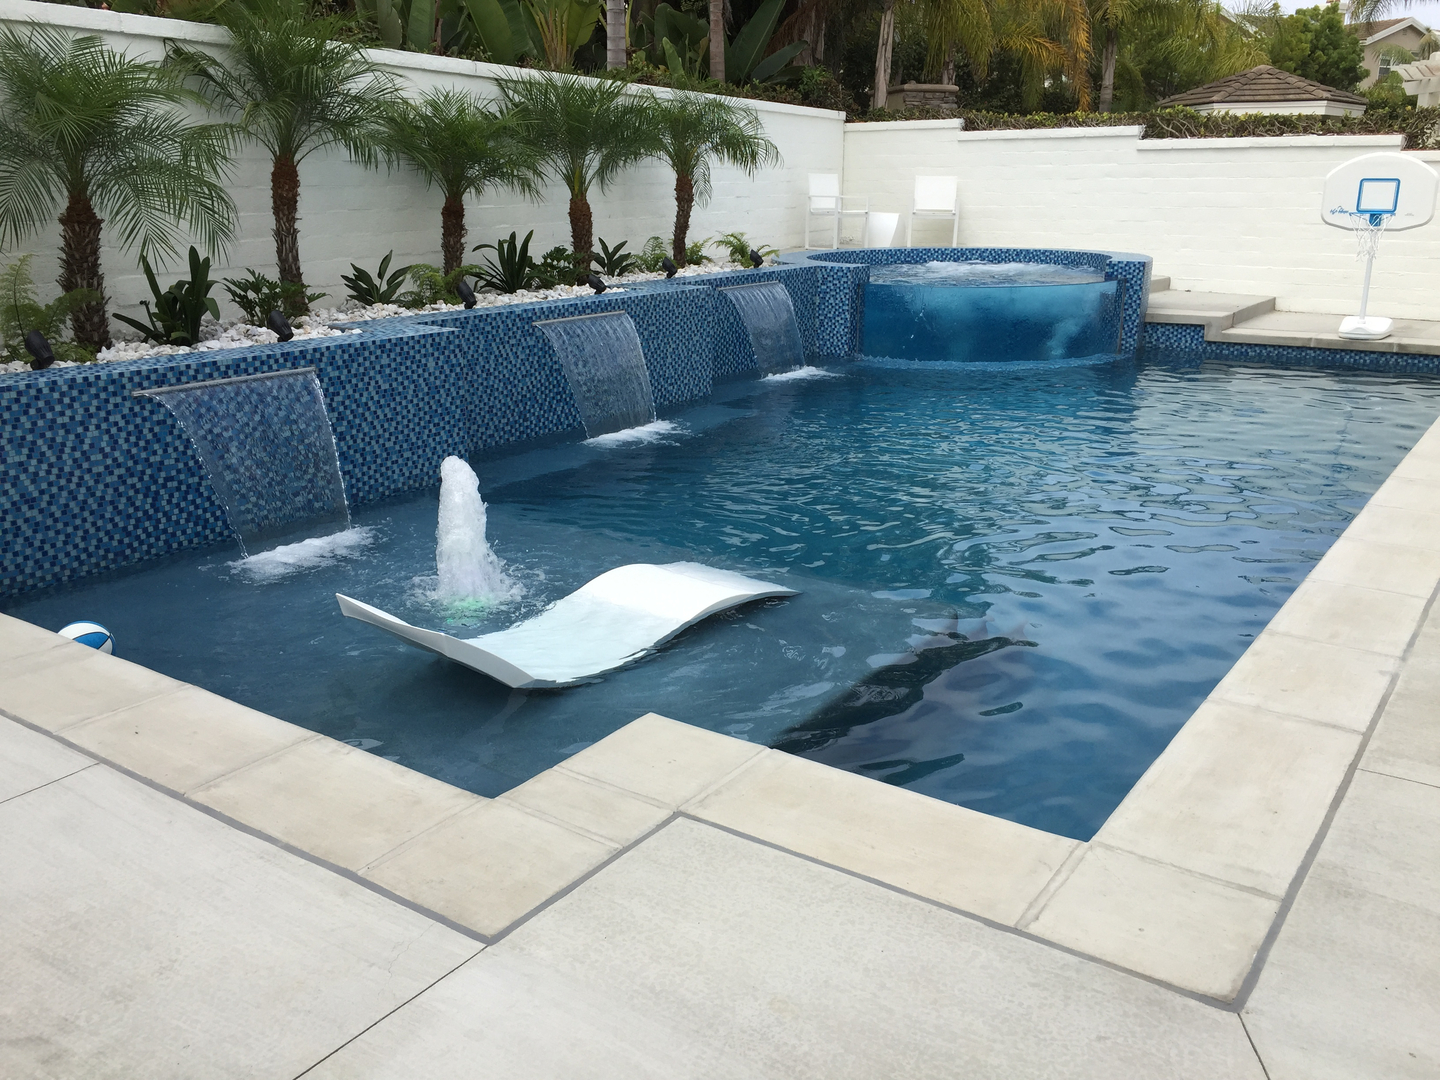 Contemporary Pool meridian custom pools - swimming pool construction, modern and